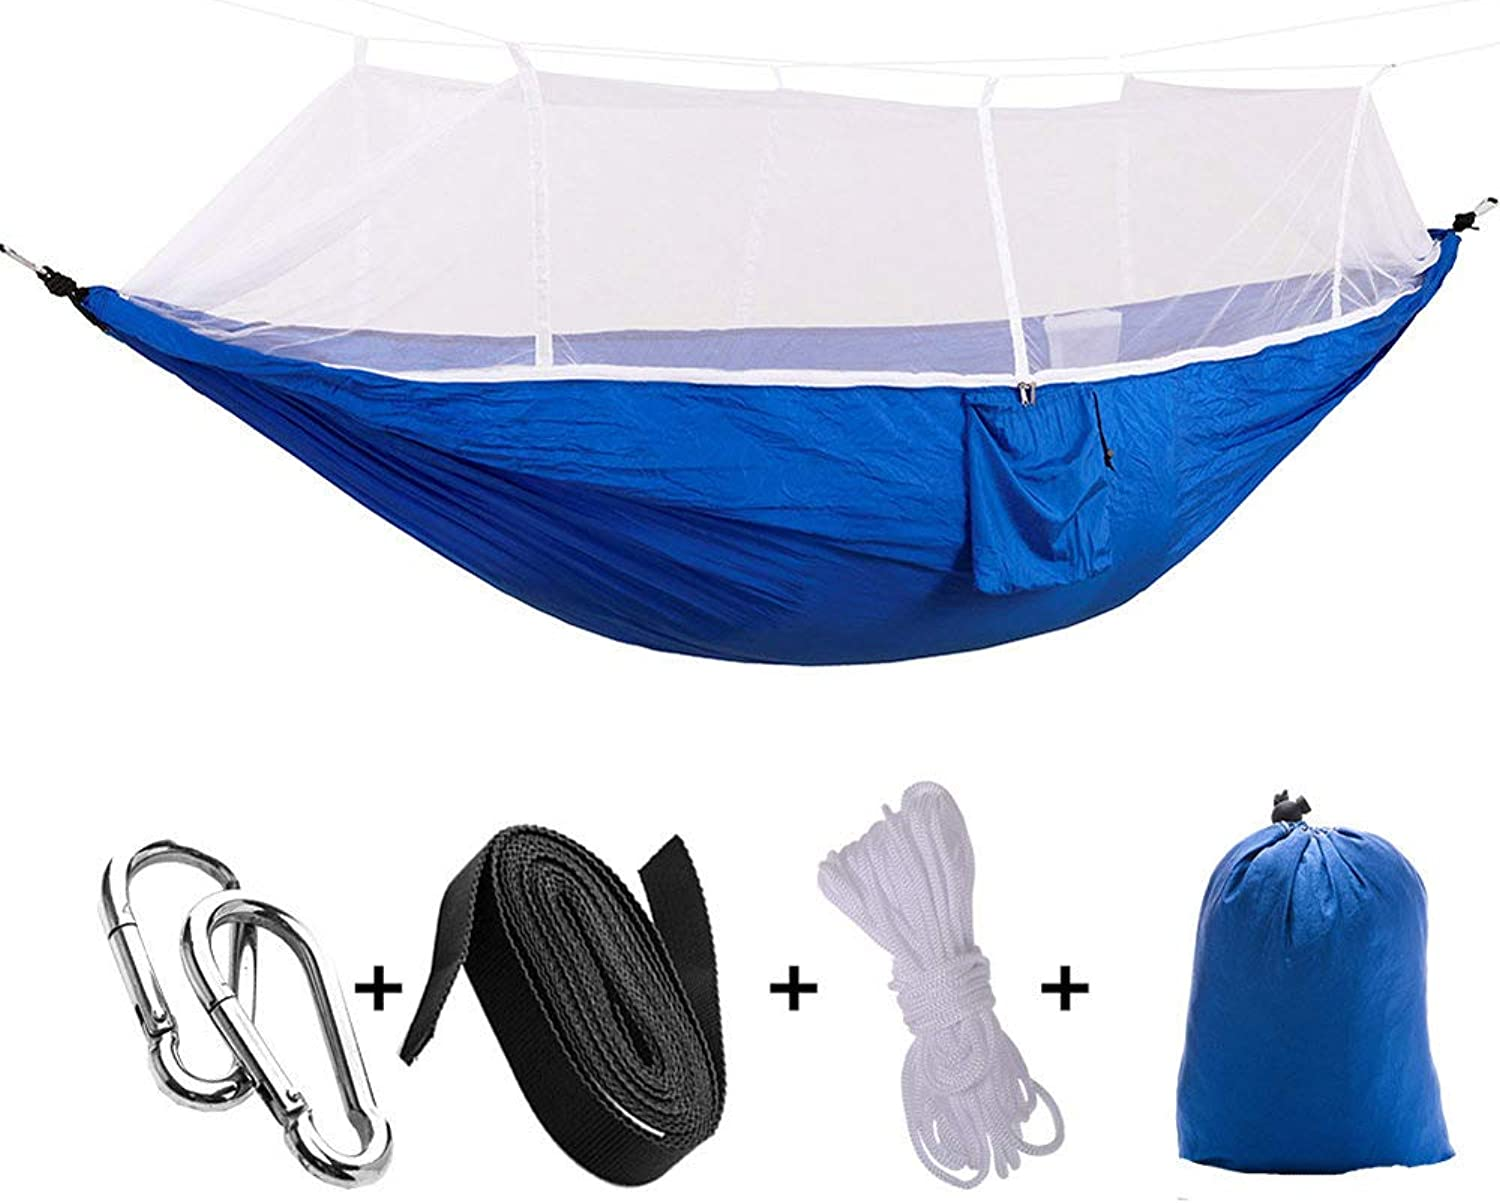 Outdoor Parachute Cloth Hammock with Mosquito Net Ultra Light Double Multicolor Comfortable Camping Aerial Tent,blueewhitenet